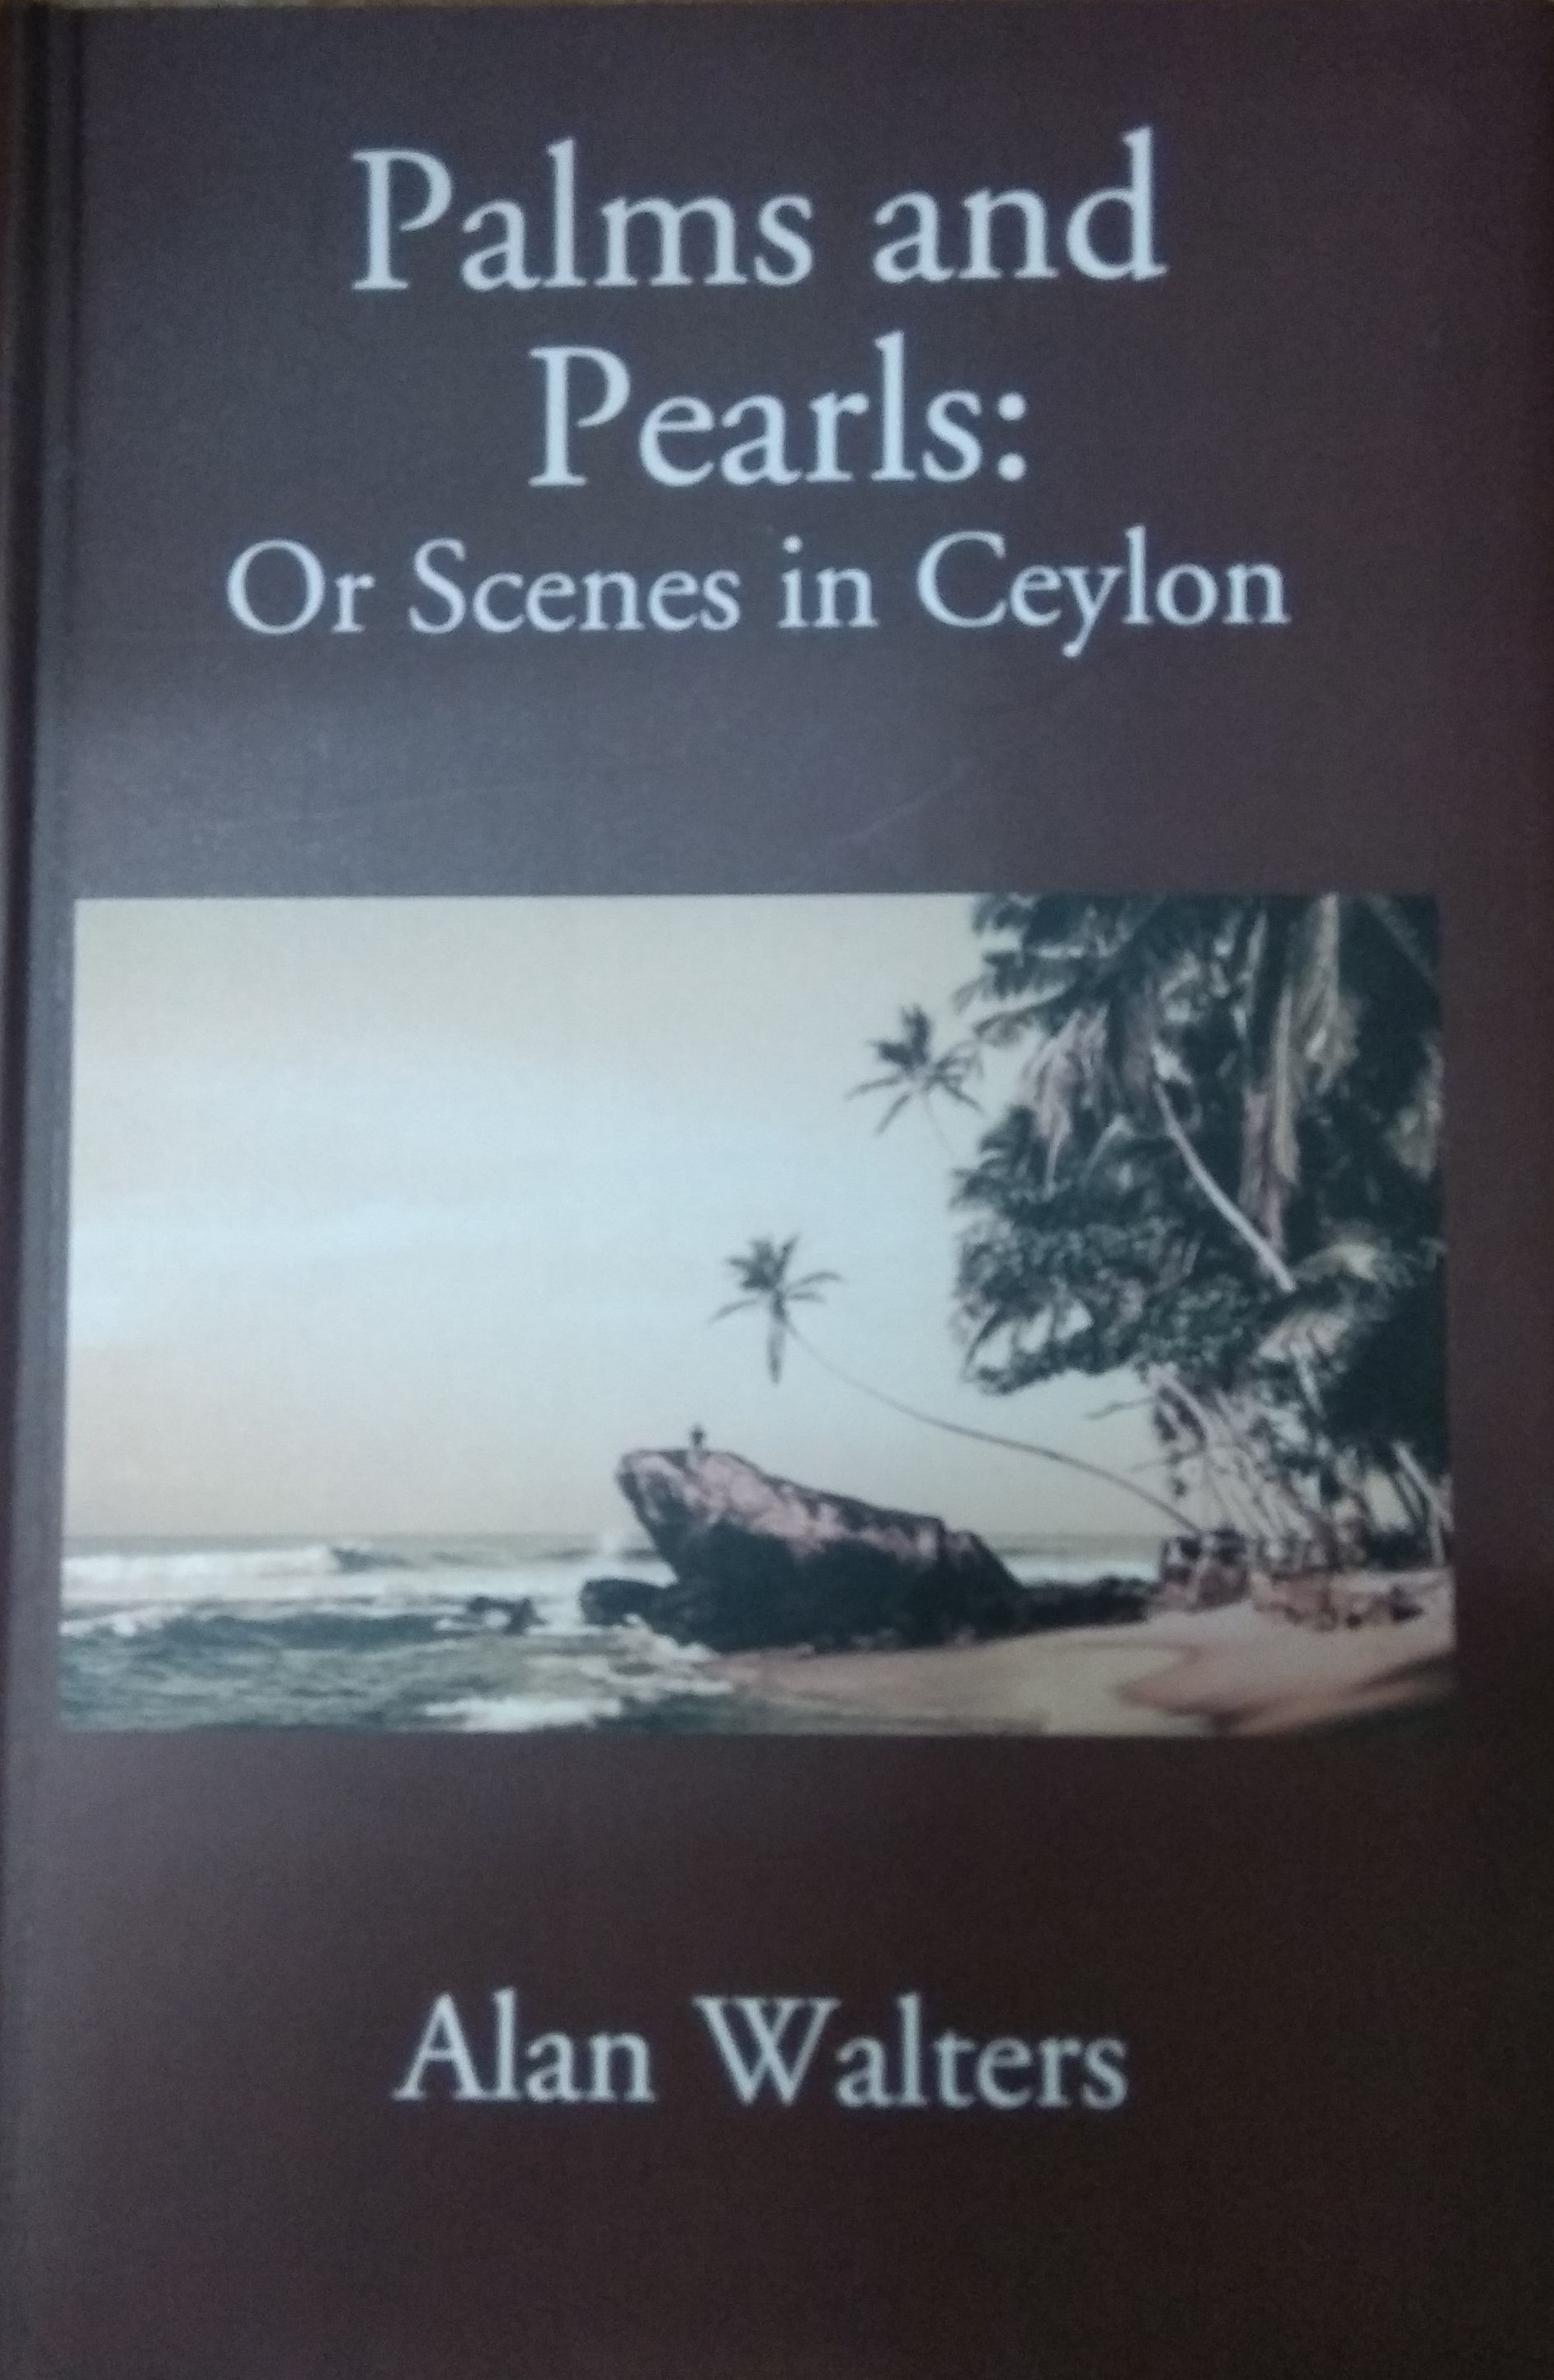 Palms and Pearls: Or Scenes in Ceylon